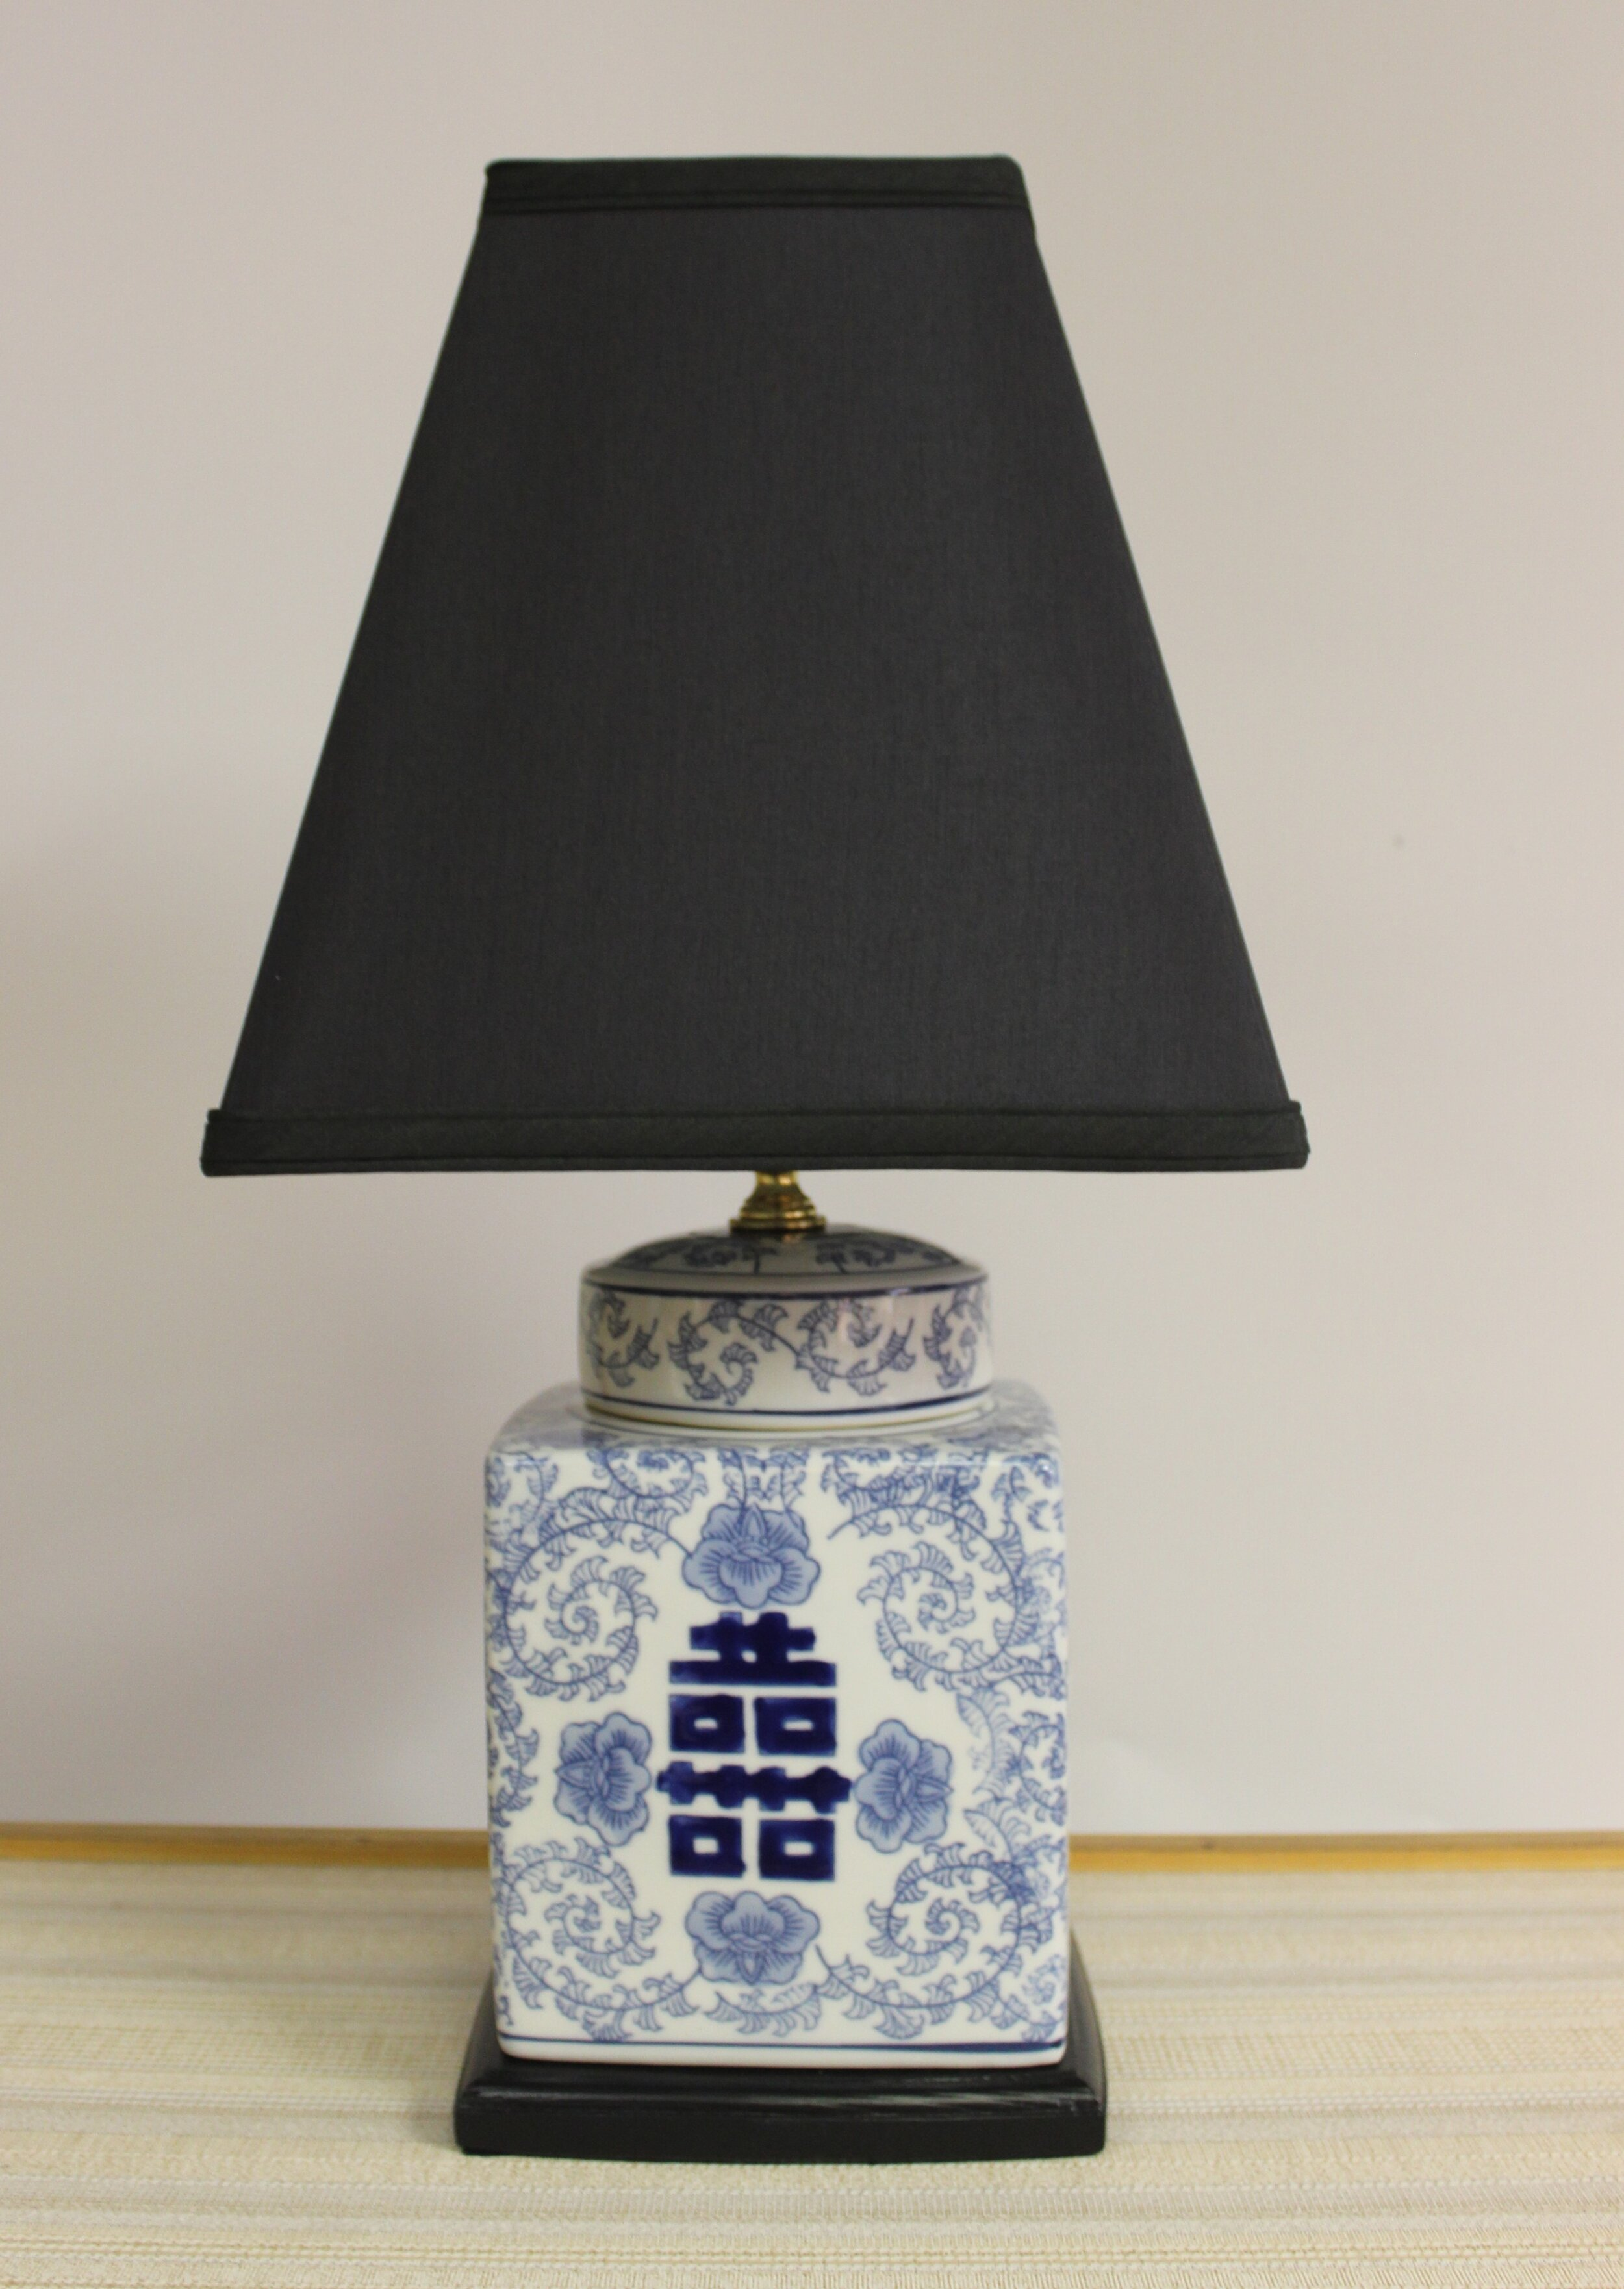 """Square Blue & White Cannister Lamp This classic style lamp stands 20"""" tall. The shade measures 10"""" square at the bottom measurement. The jar has it's own lid, at the top and we make the black wood base to match the profile of the cannister.    $195.00, plus shipping"""